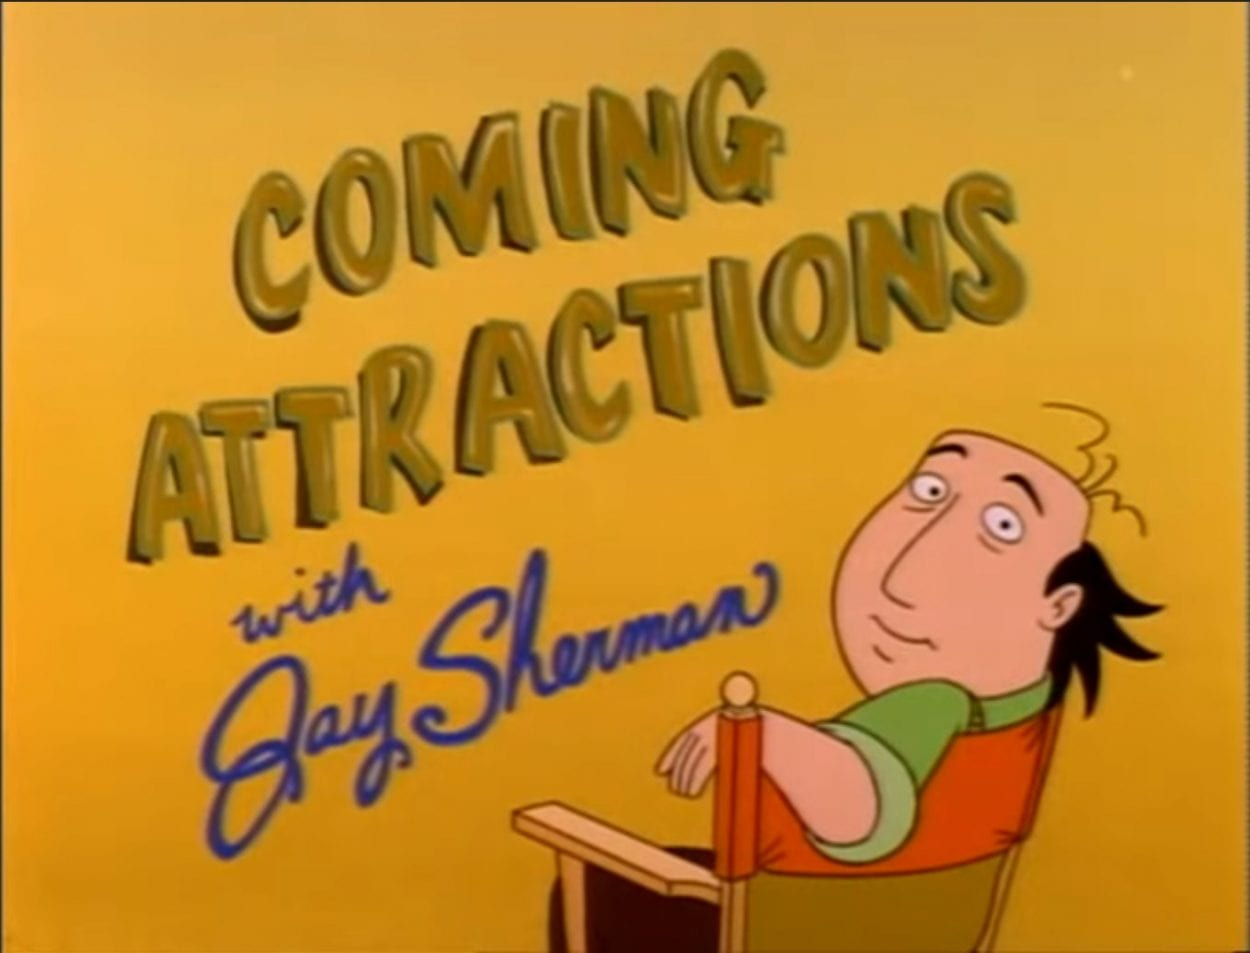 The title card for Jay Sherman's show